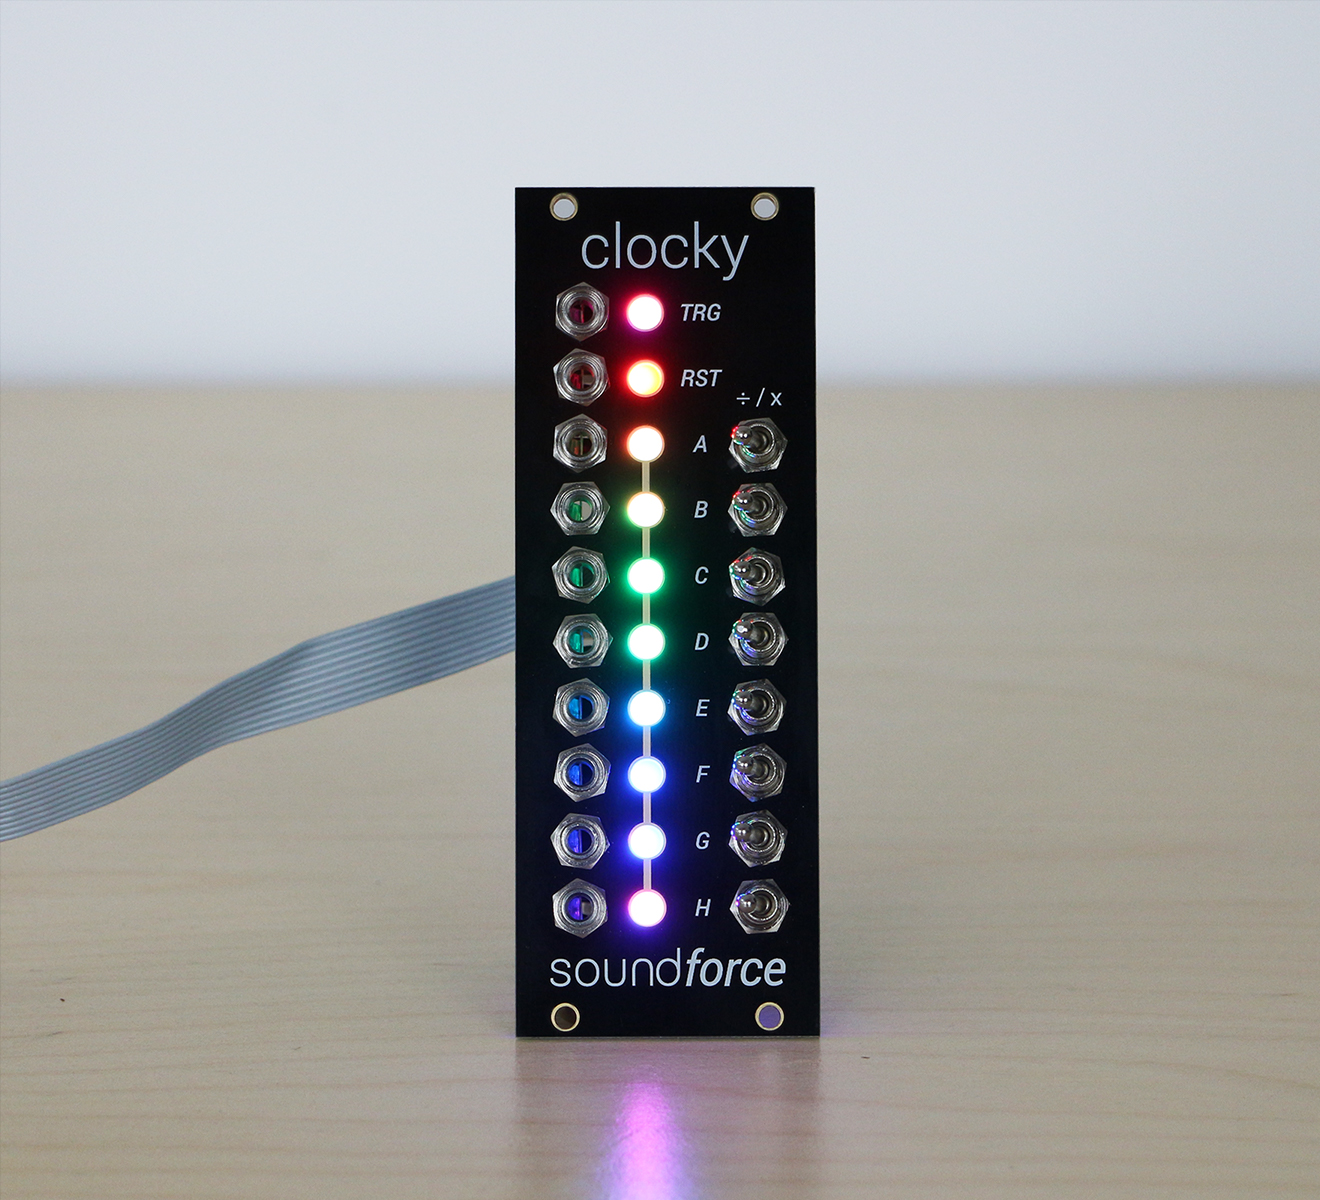 Clocky_front_leds2